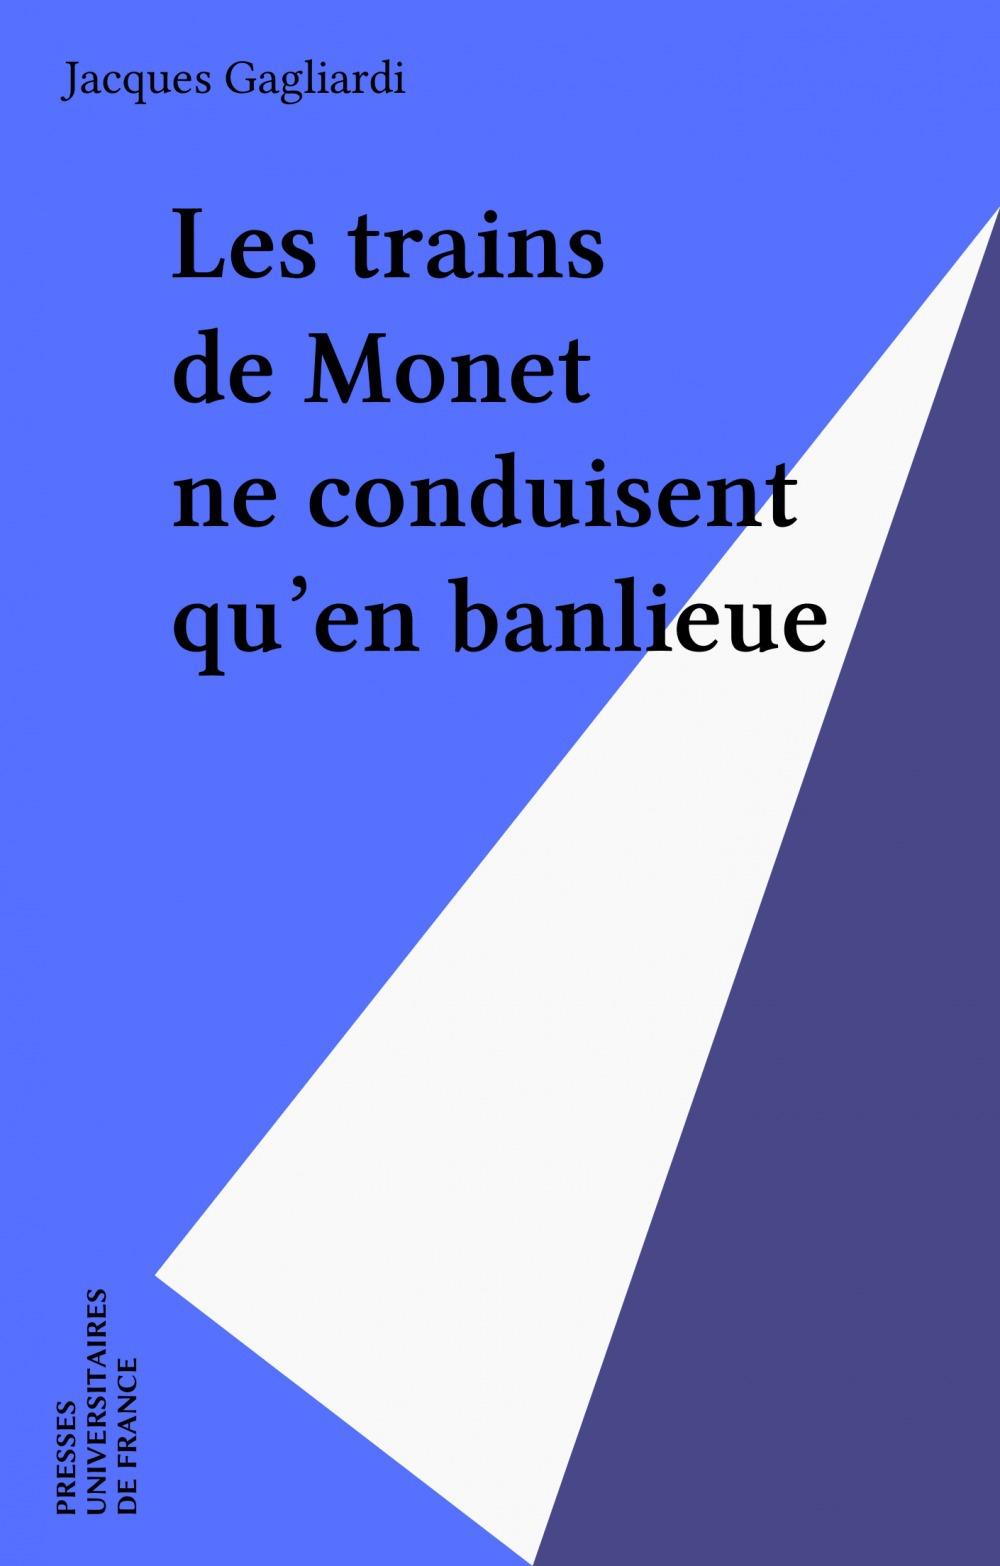 Trains de monet ne conduisent qu'en